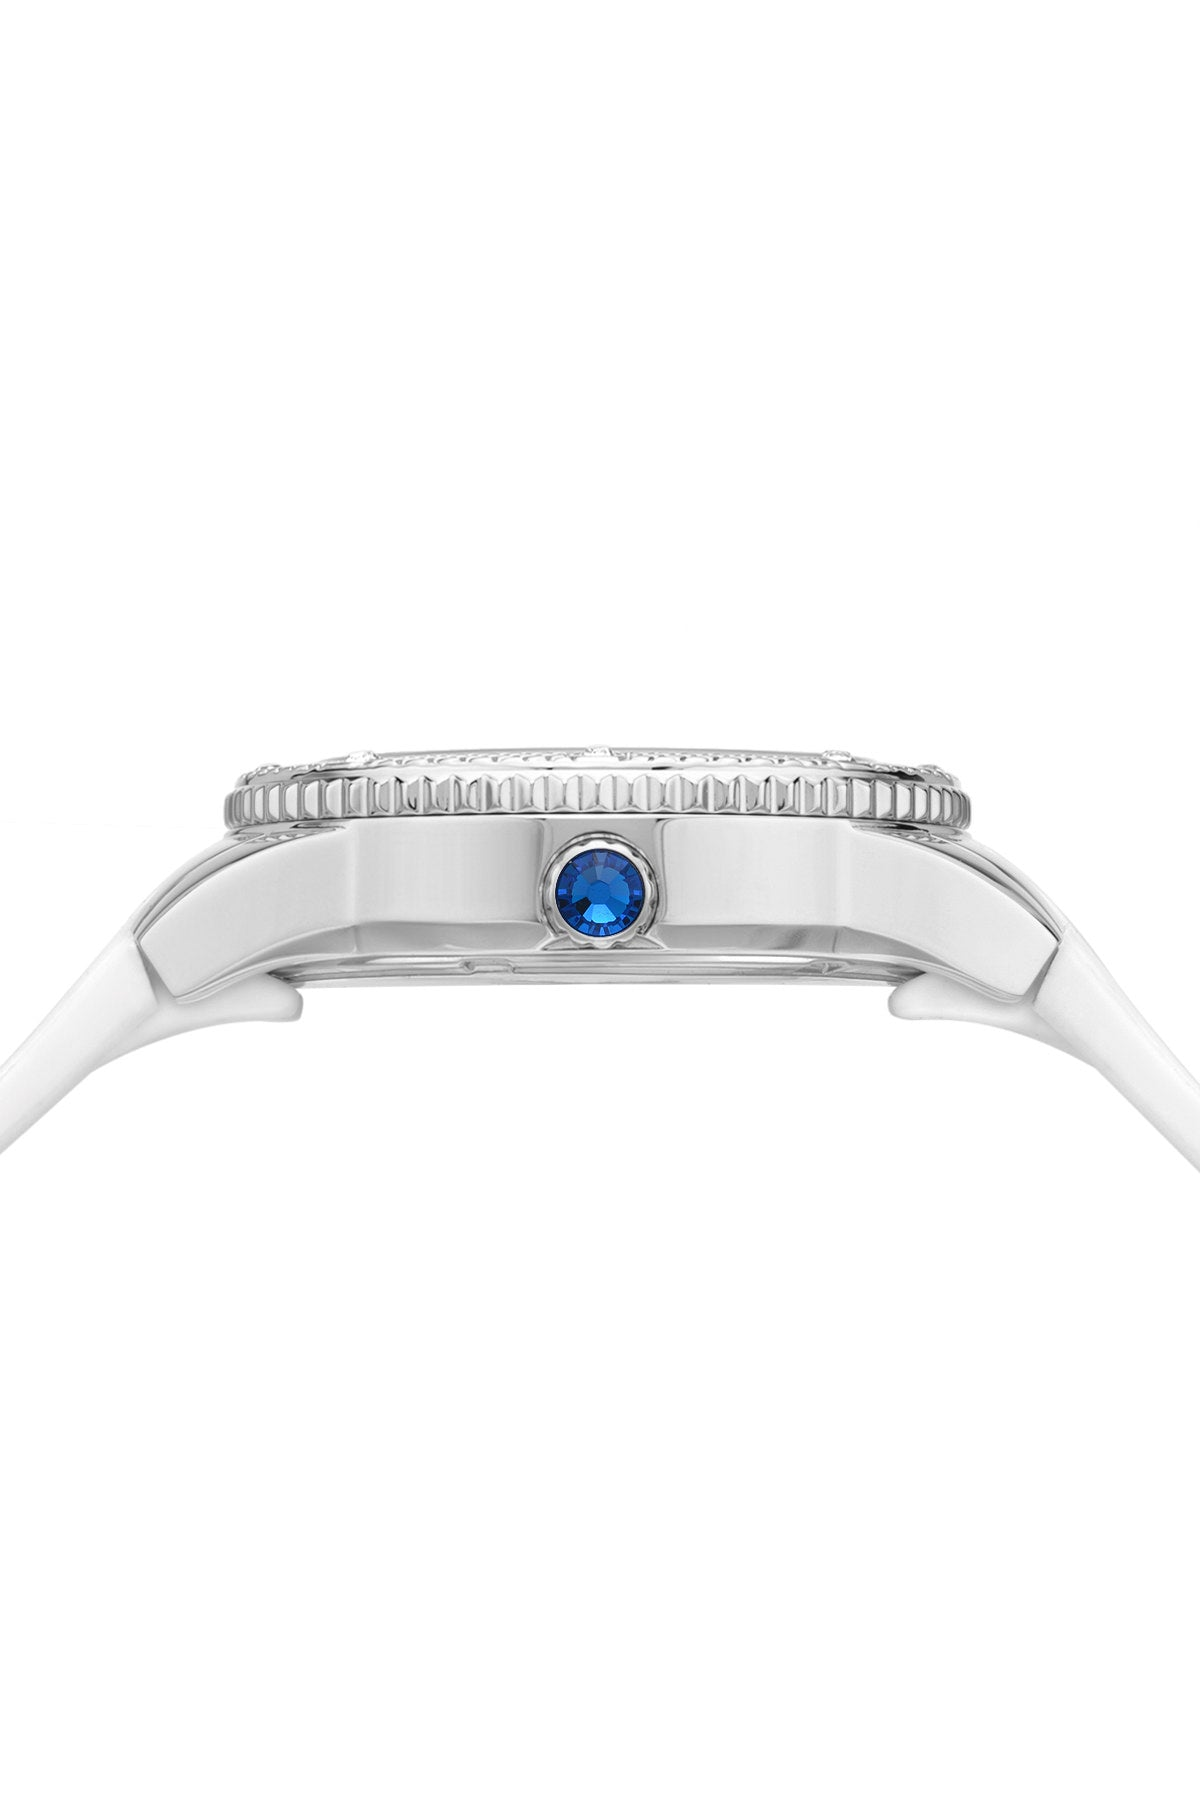 Porsamo Bleu Linda luxury women's watch, silicone strap, silver, white 491ALIR